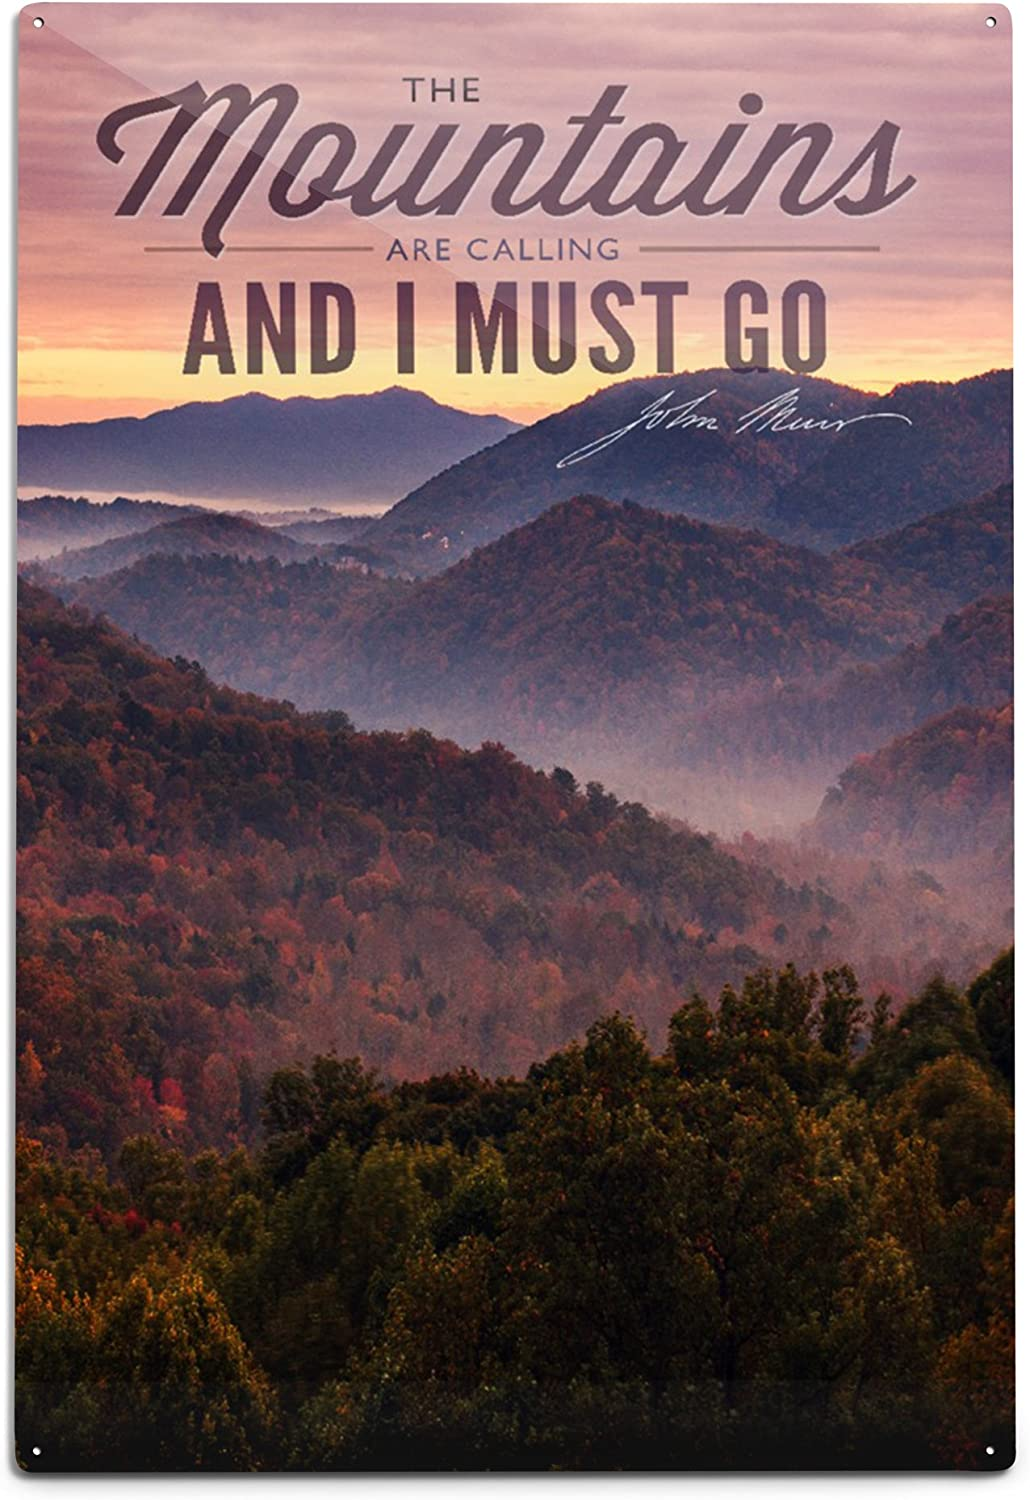 Sunset 36x54 Giclee Gallery Print, Wall Decor Travel Poster John Muir The Mountains are Calling